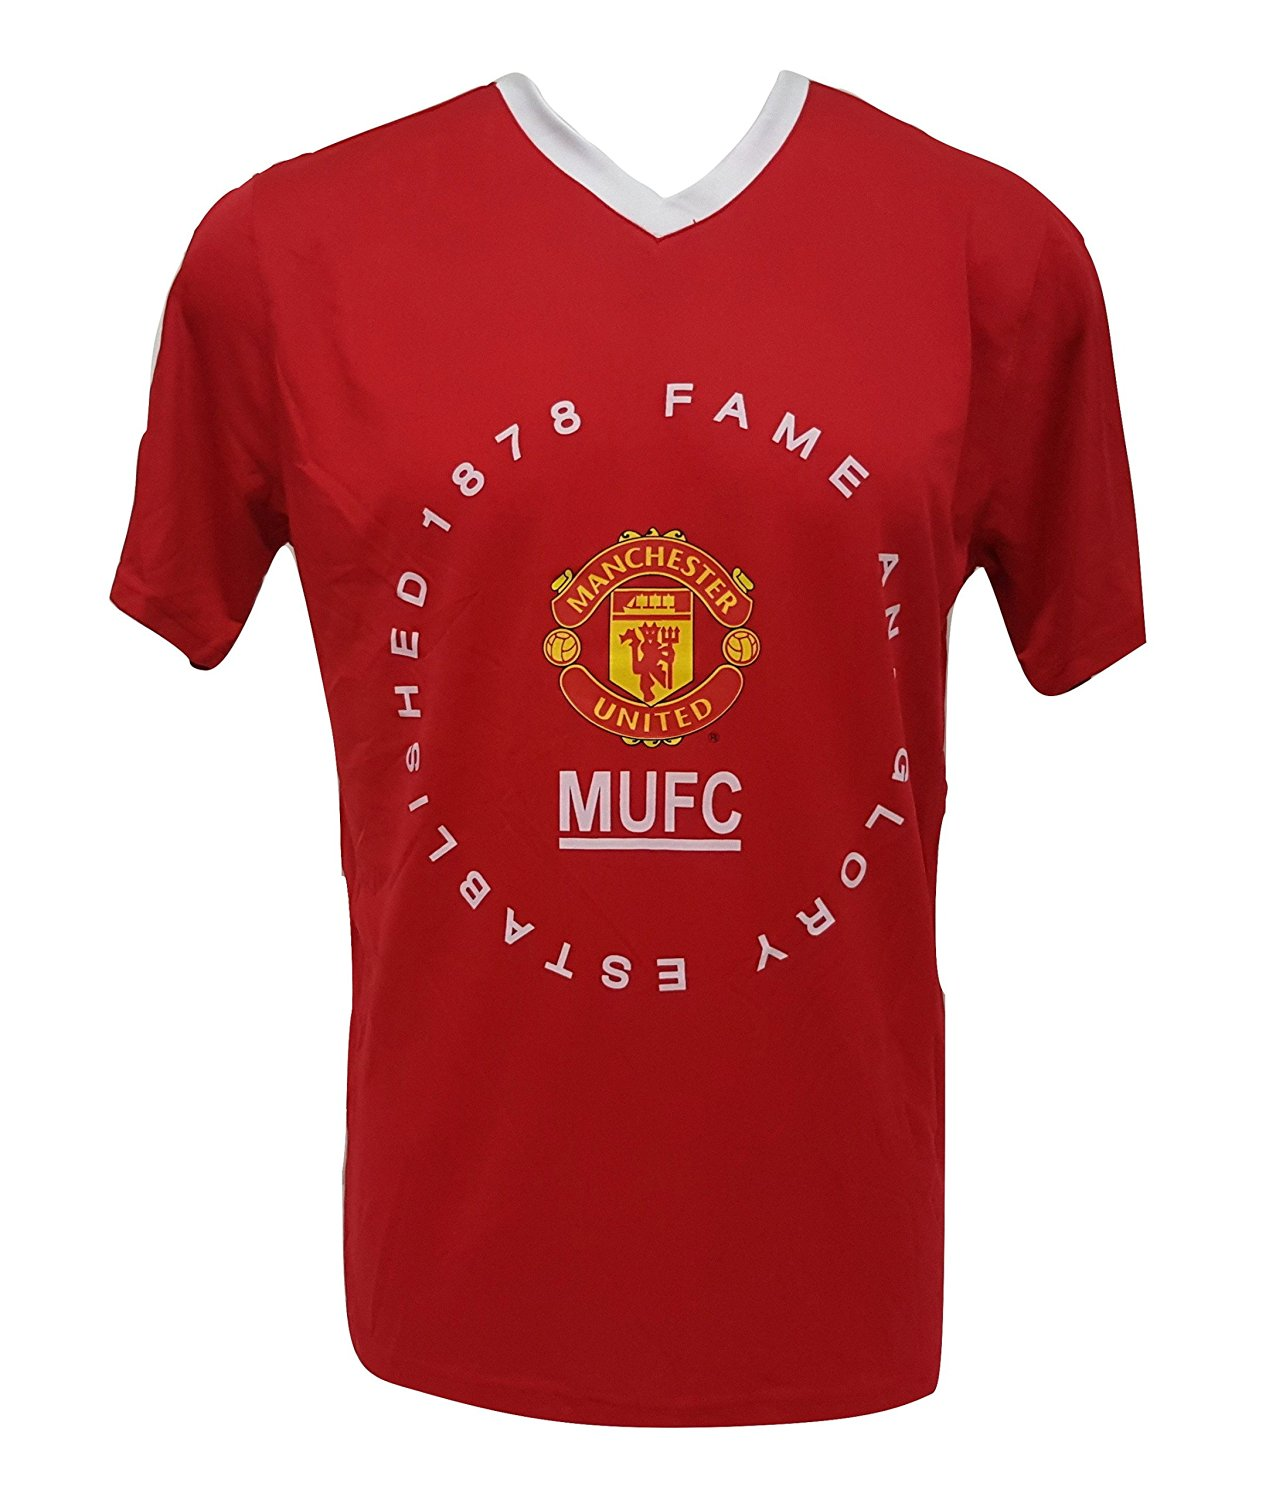 760537156a Get Quotations · Manchester United Fame and Glory Men s Jersey Poly T-shirt